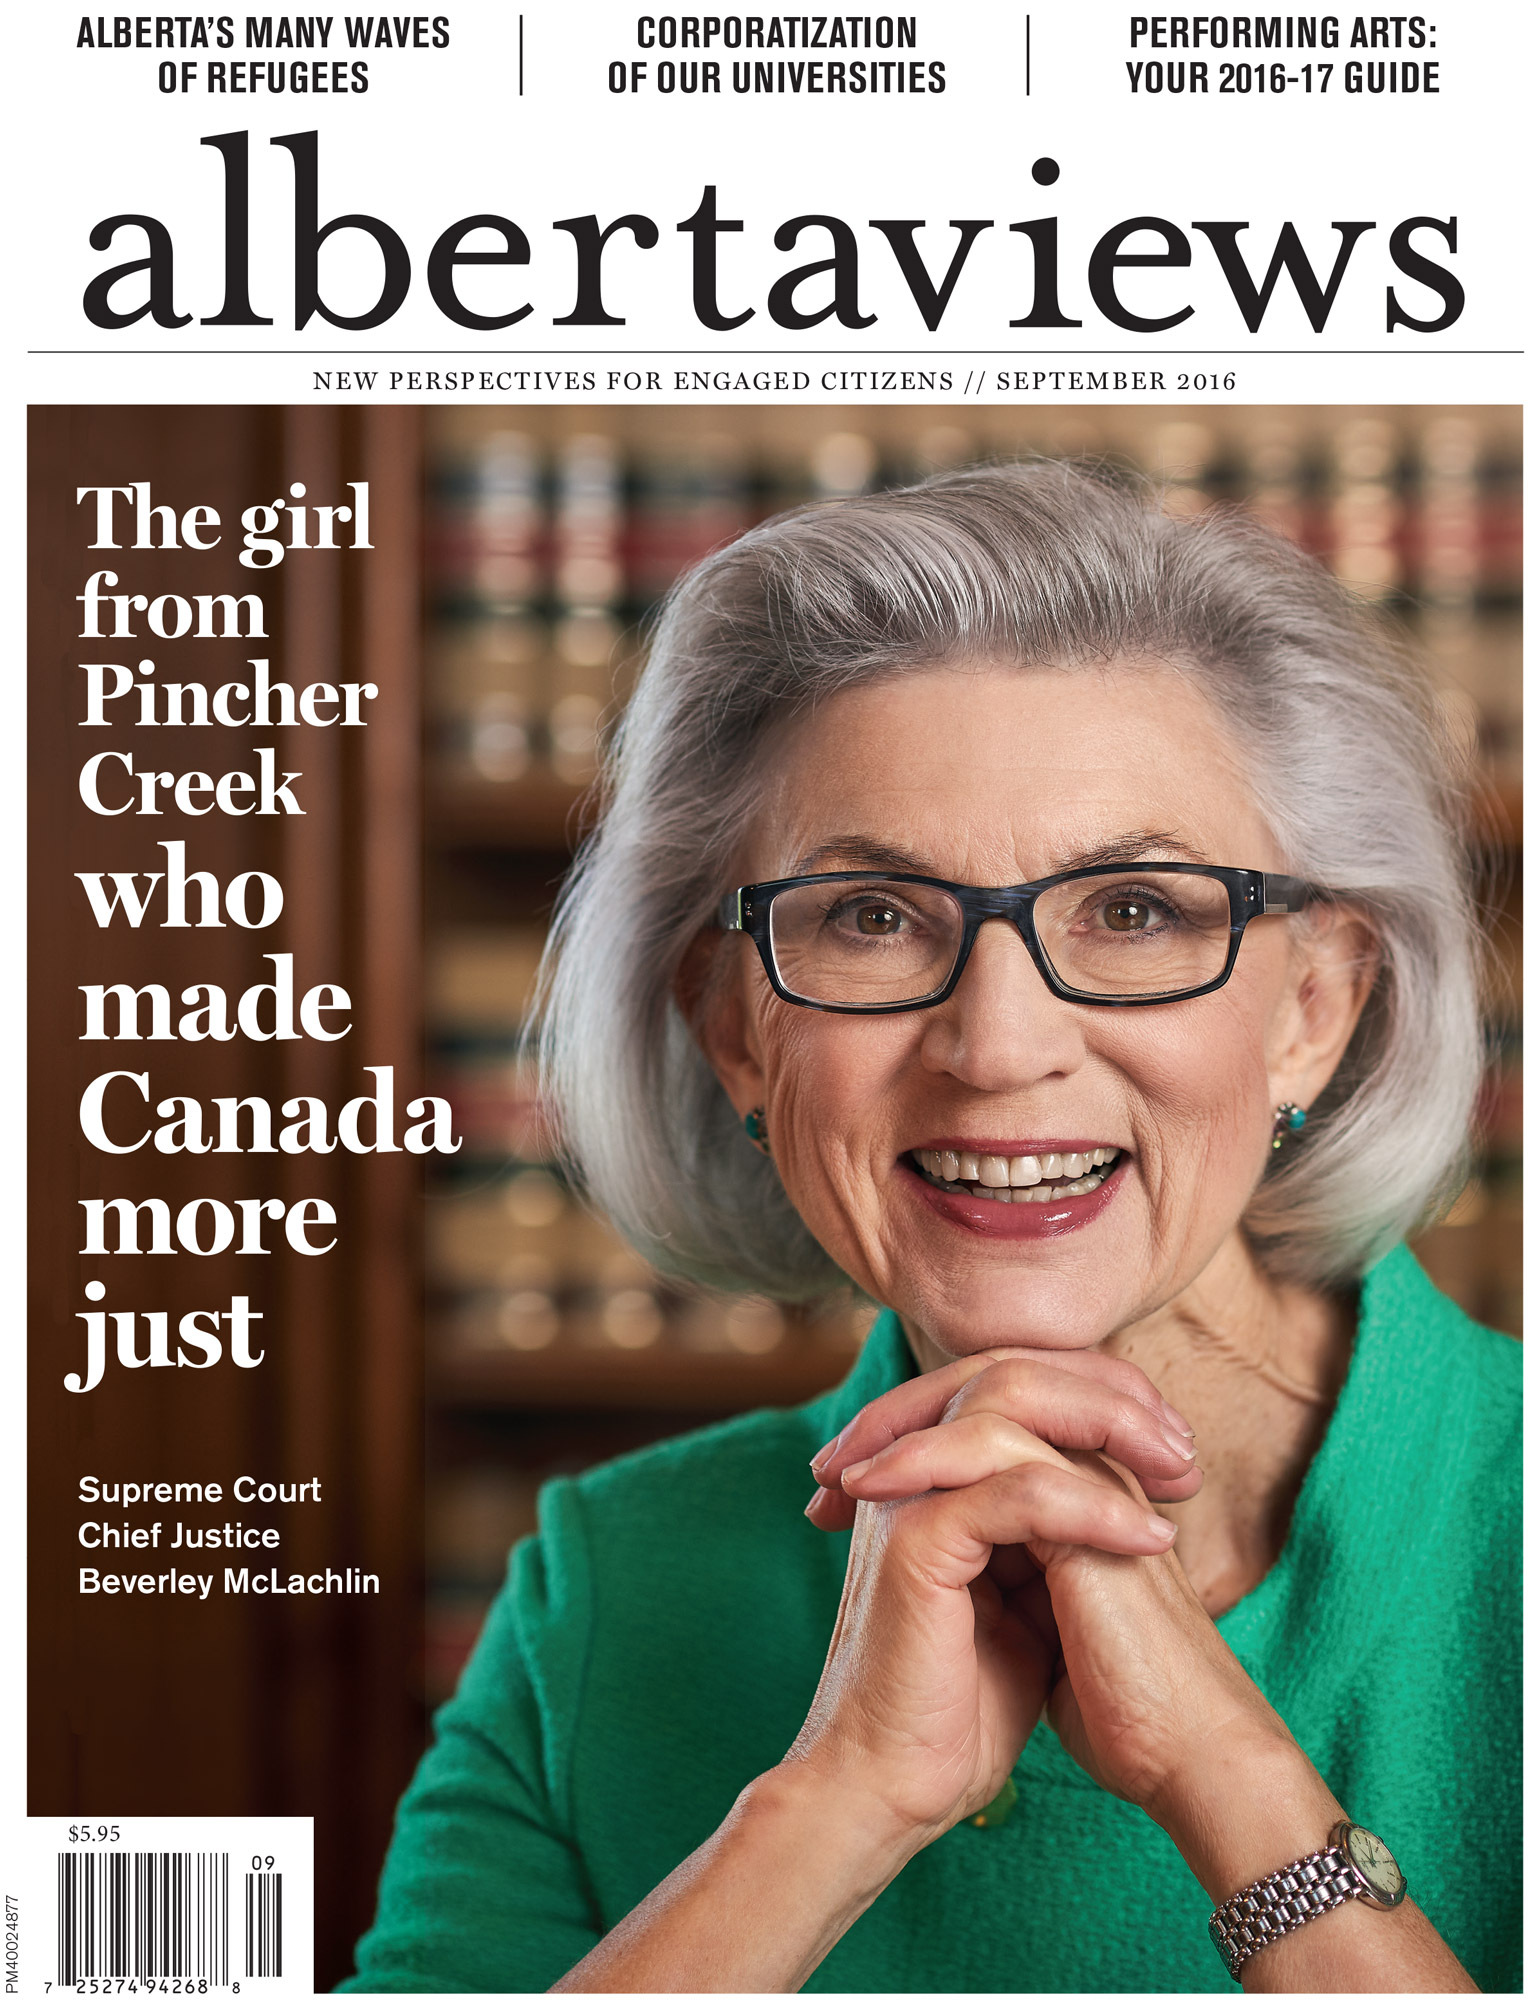 apf_jessicadeeks_TS_AlbertaViews_Sept2016_ChiefJustice